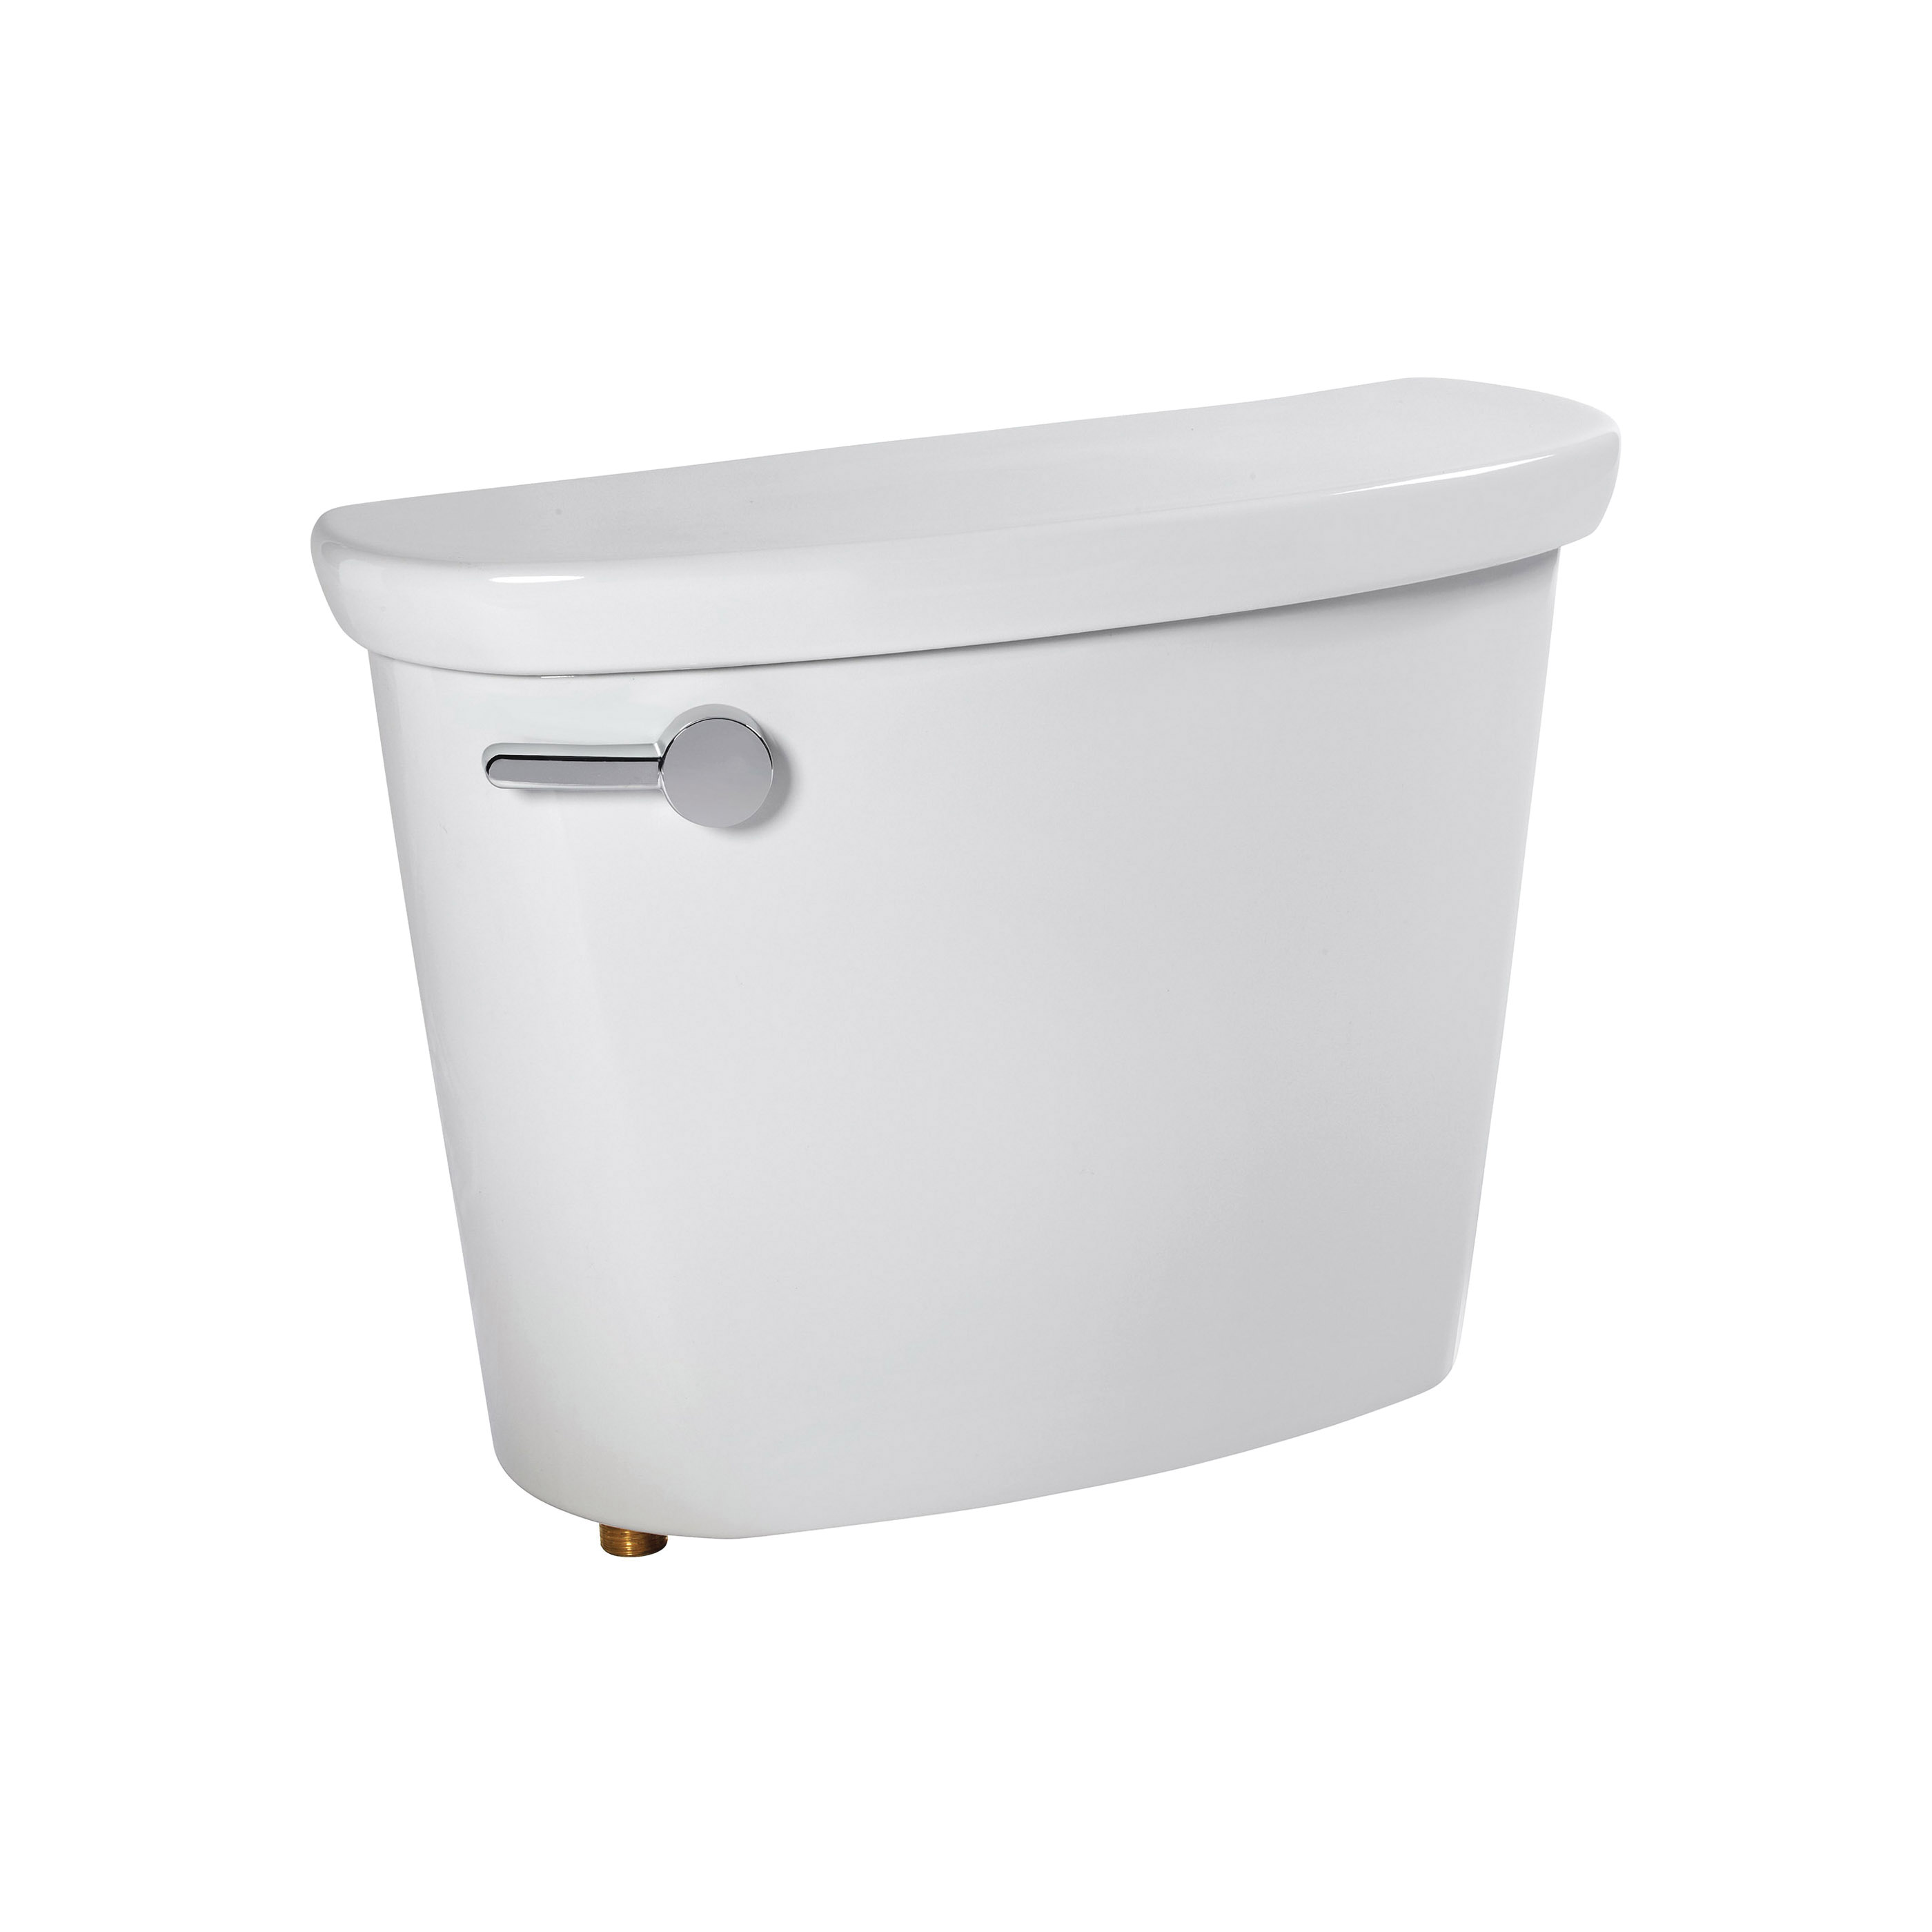 American Standard 4188B104.020 Toilet Tank with Left Hand Trip Lever, with 10 in Rough-In, Cadet® Pro™, 1.28 gpf, 3 in Flush, White, Import